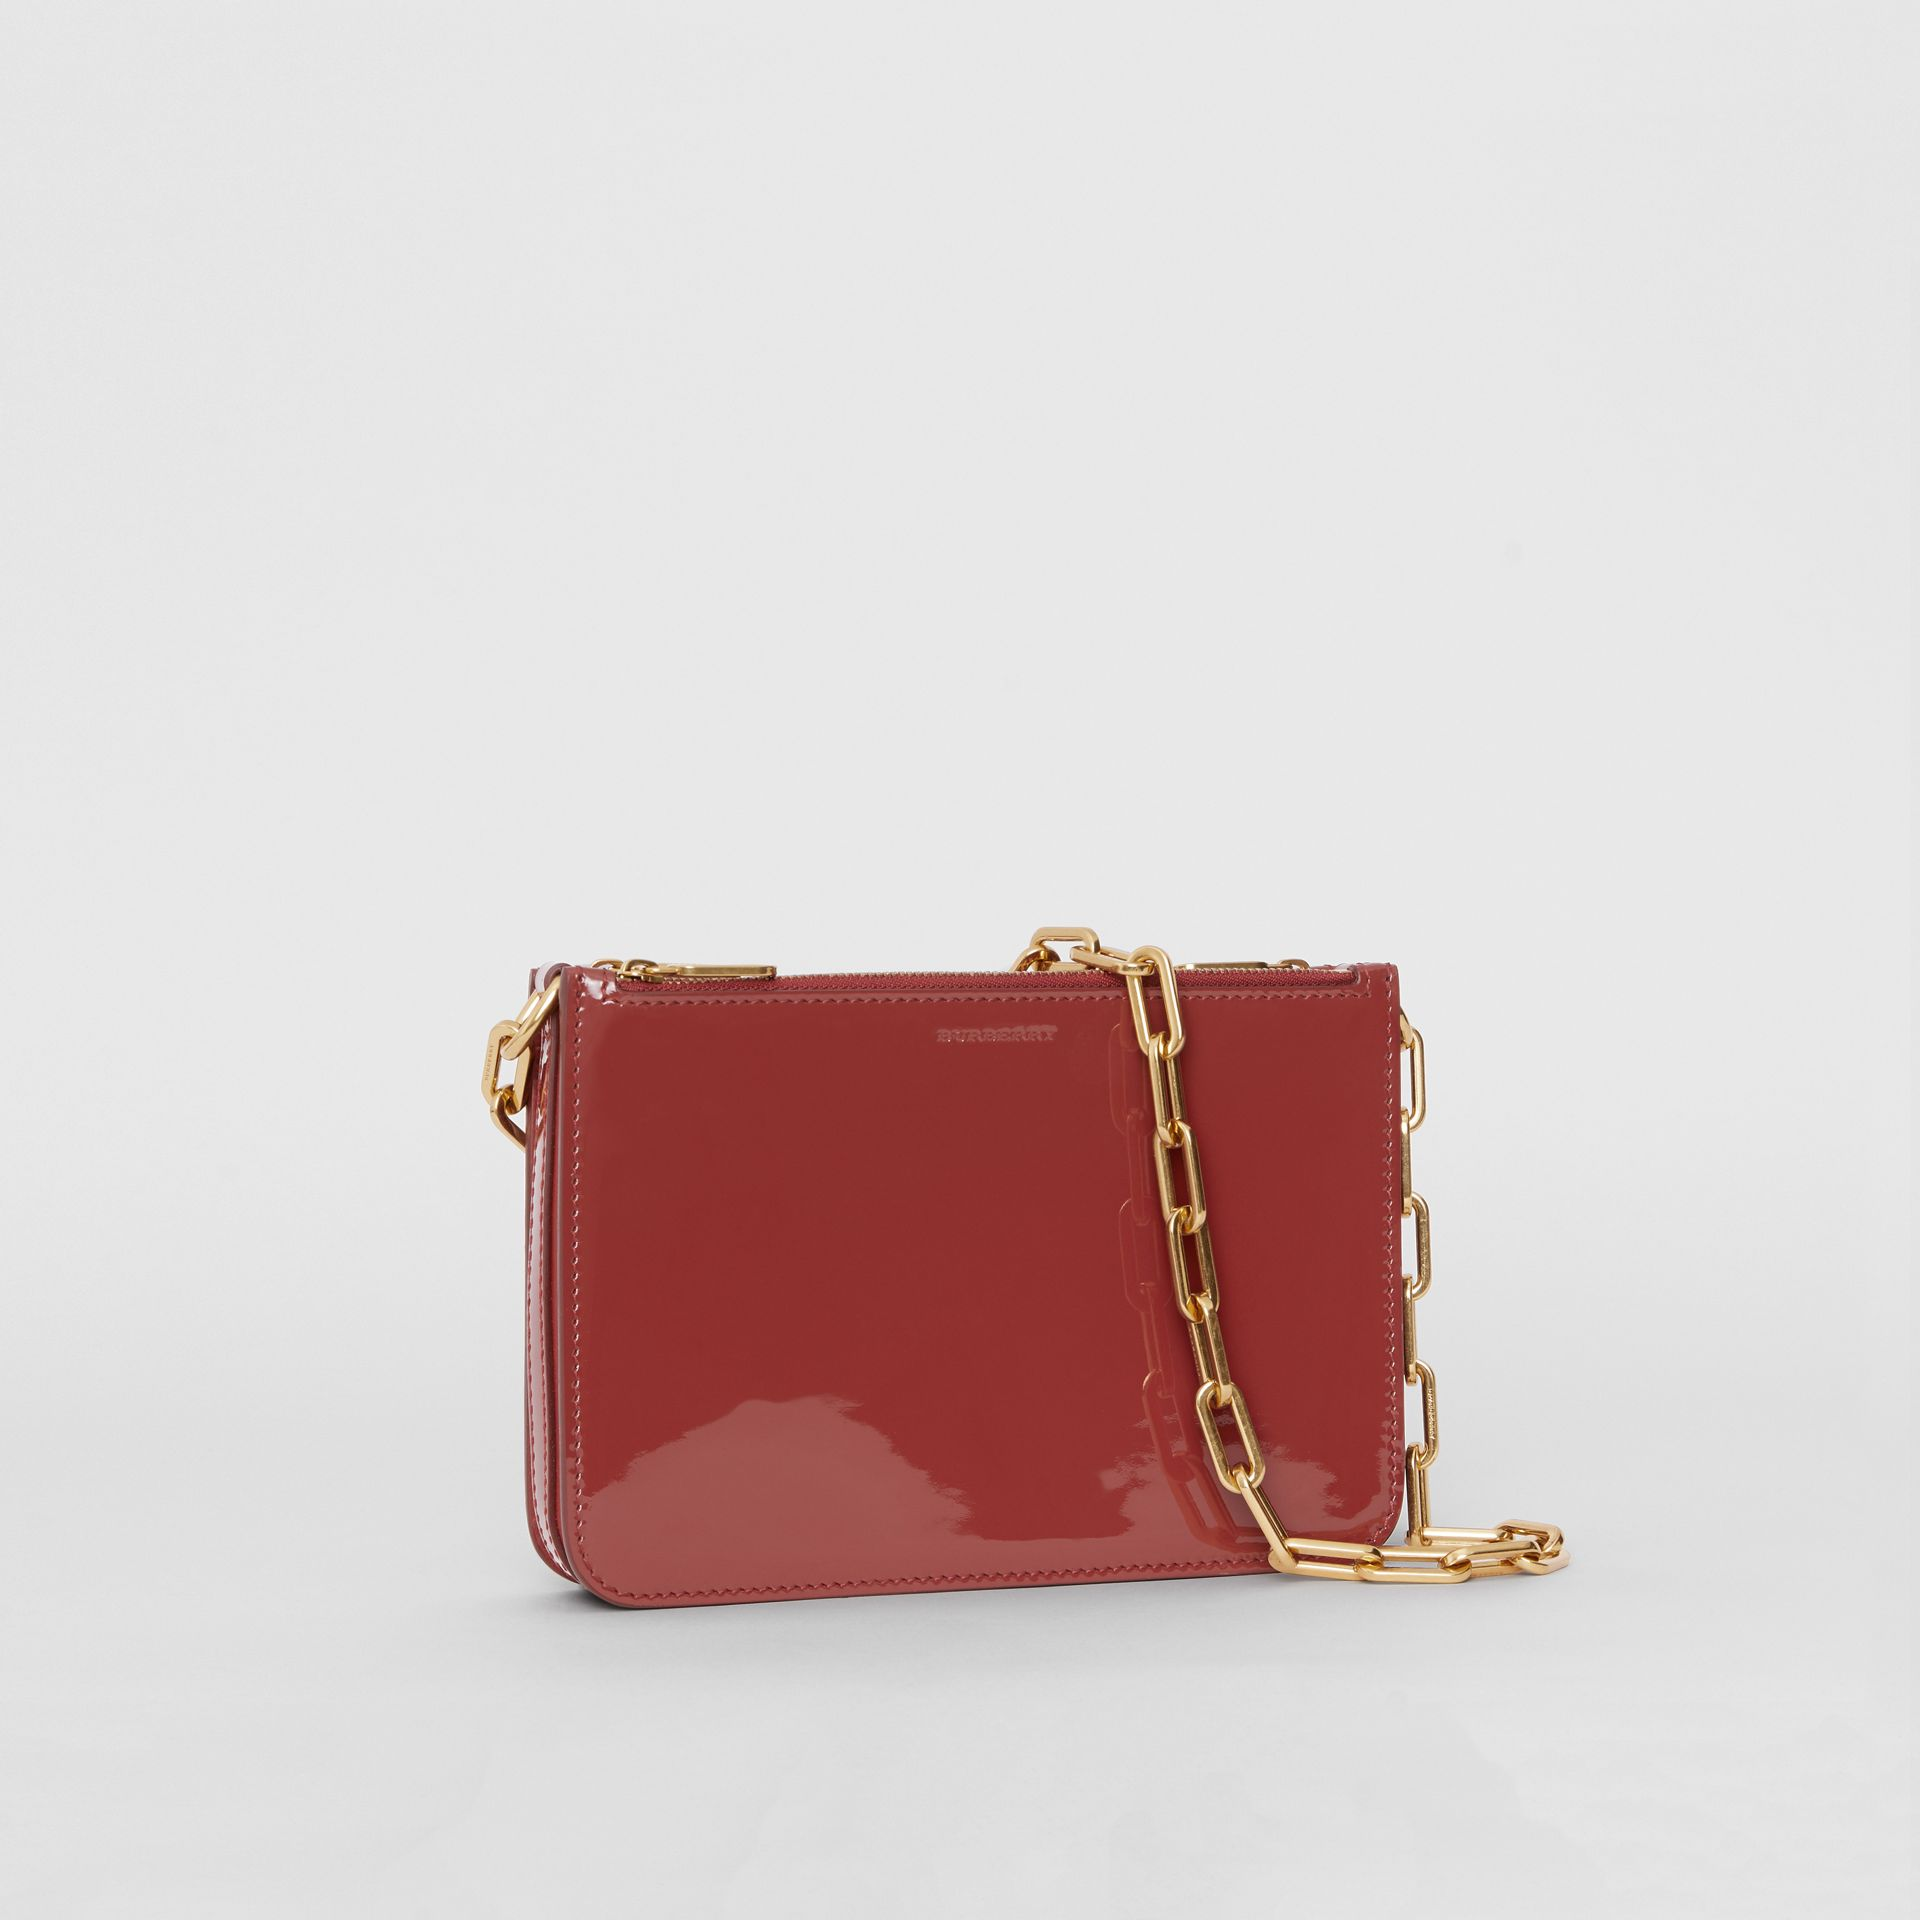 Triple Zip Patent Leather Crossbody Bag in Crimson - Women | Burberry United States - gallery image 6